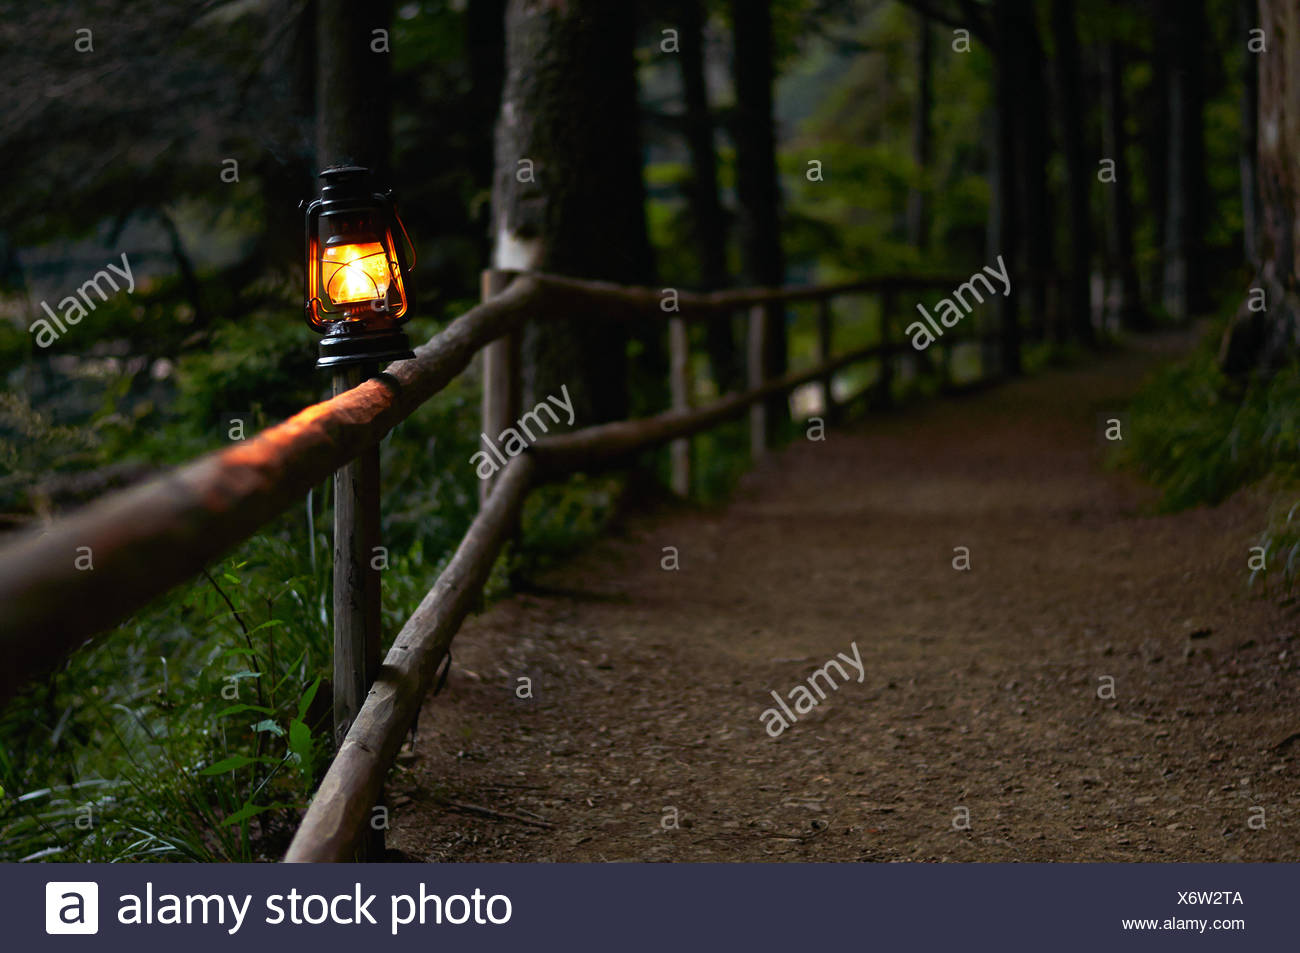 Illuminated oil lamp on fence along woodland path - Stock Image